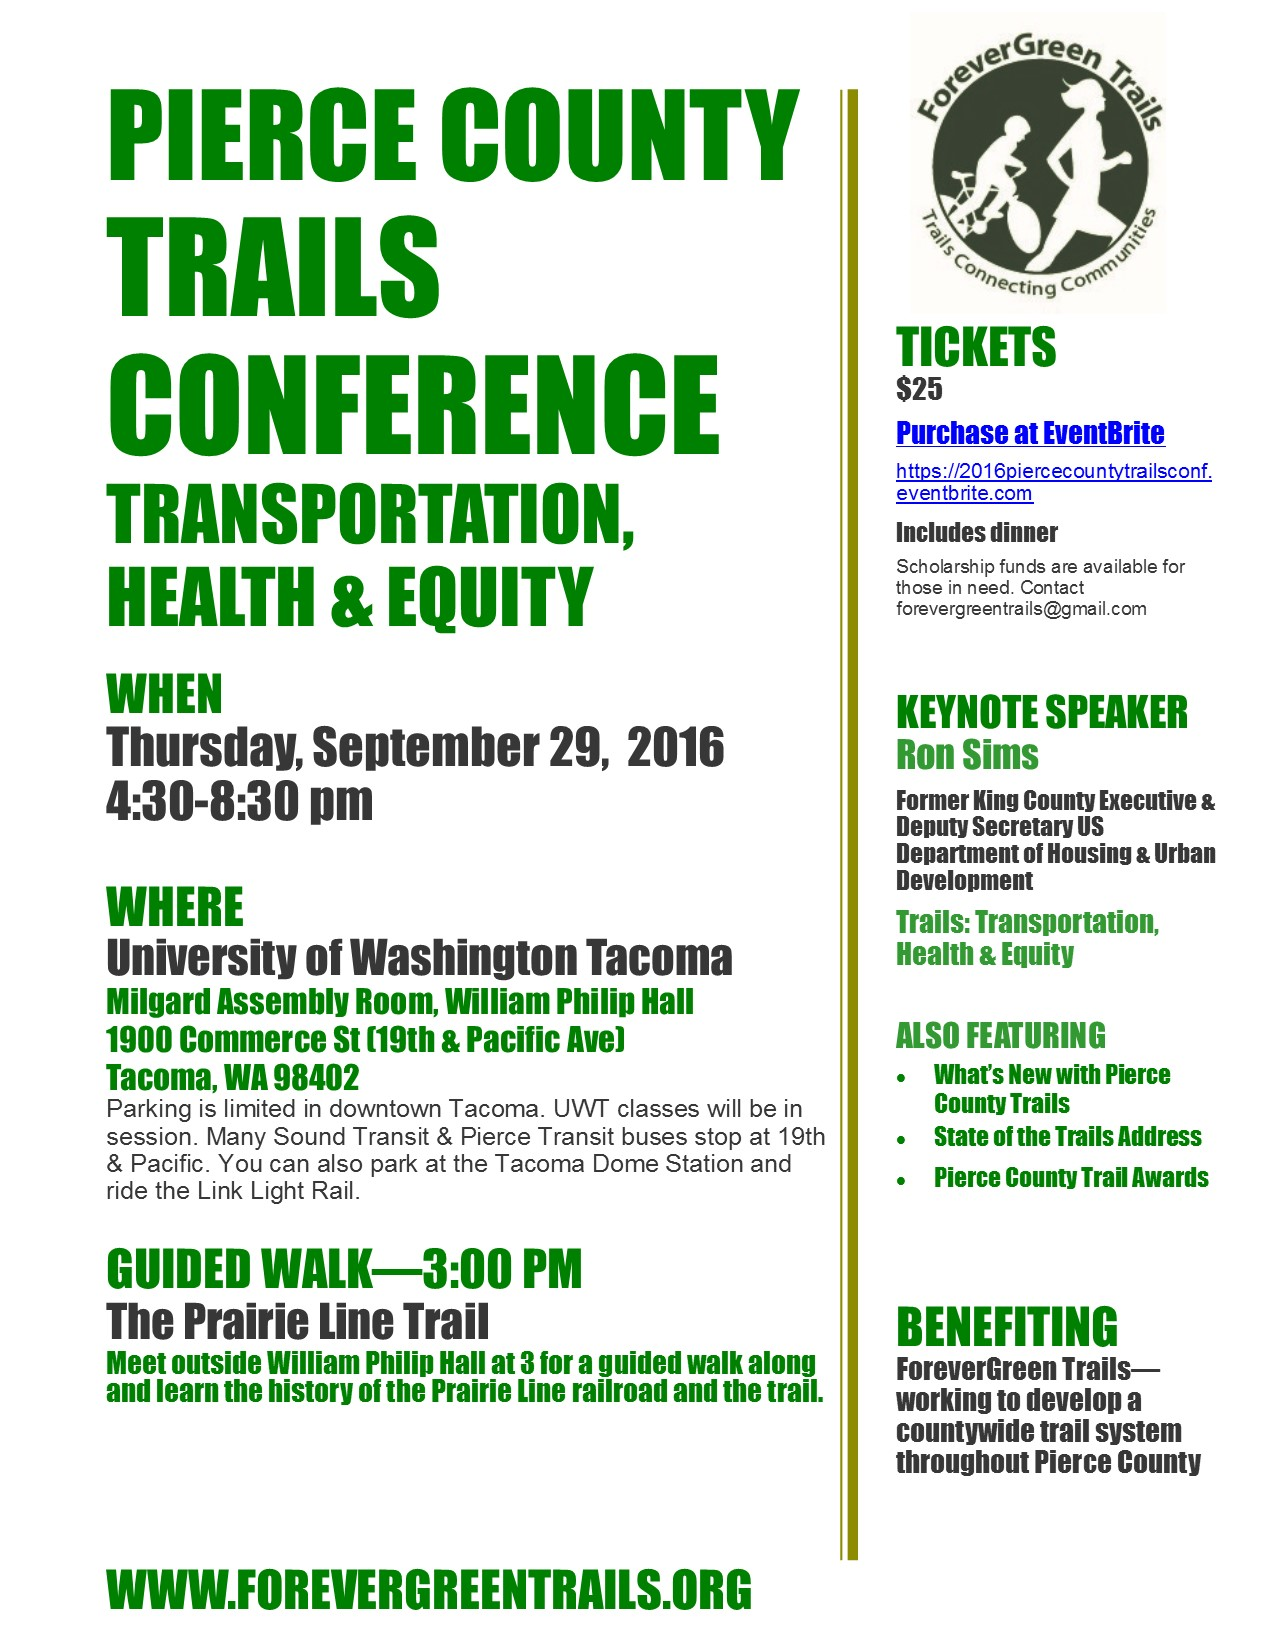 2016 Pierce County Trails Conference | ForeverGreen Trails